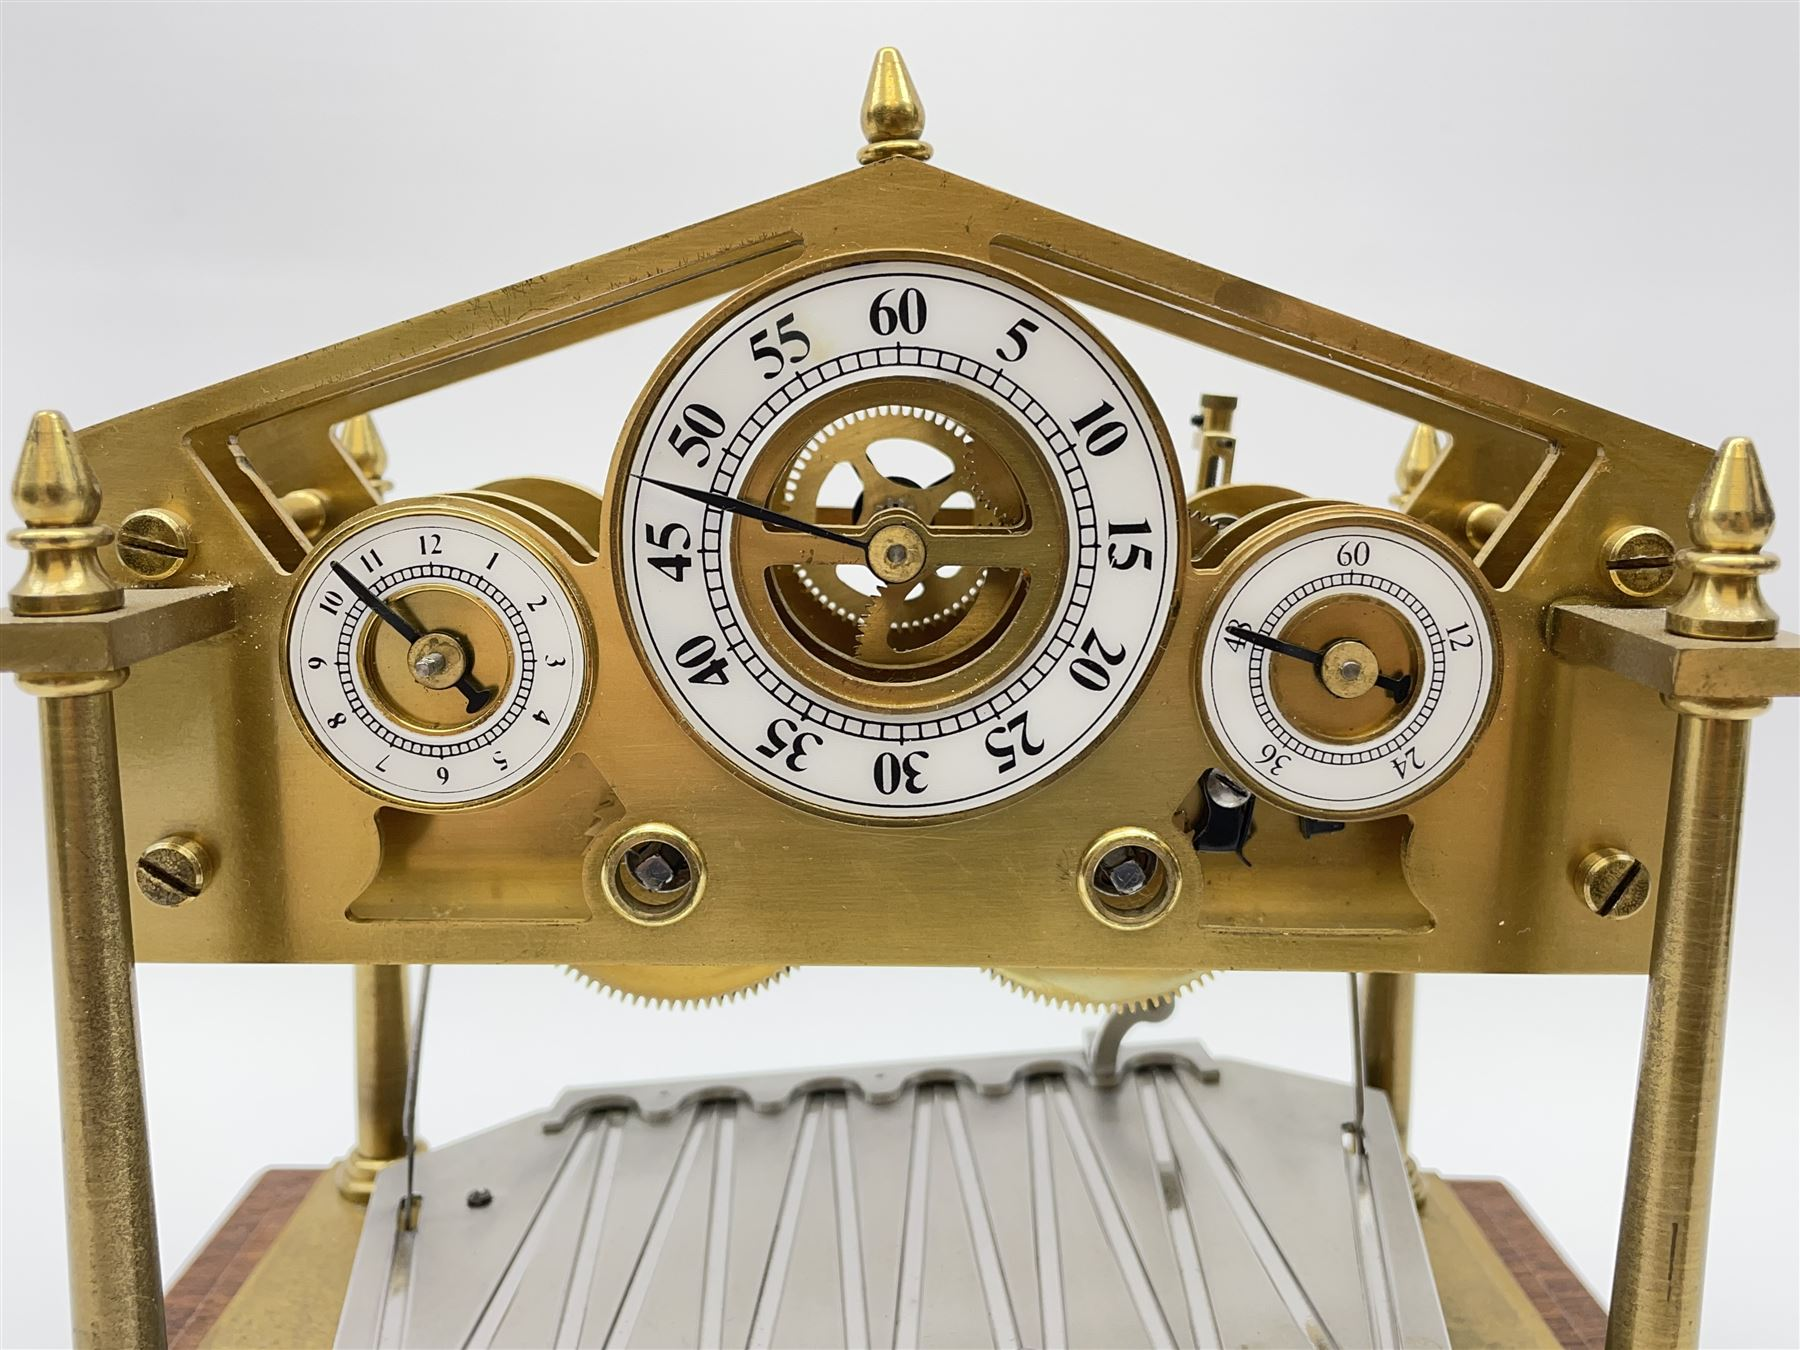 Mid 20th century 'Congreve' rolling ball clock - Image 4 of 9